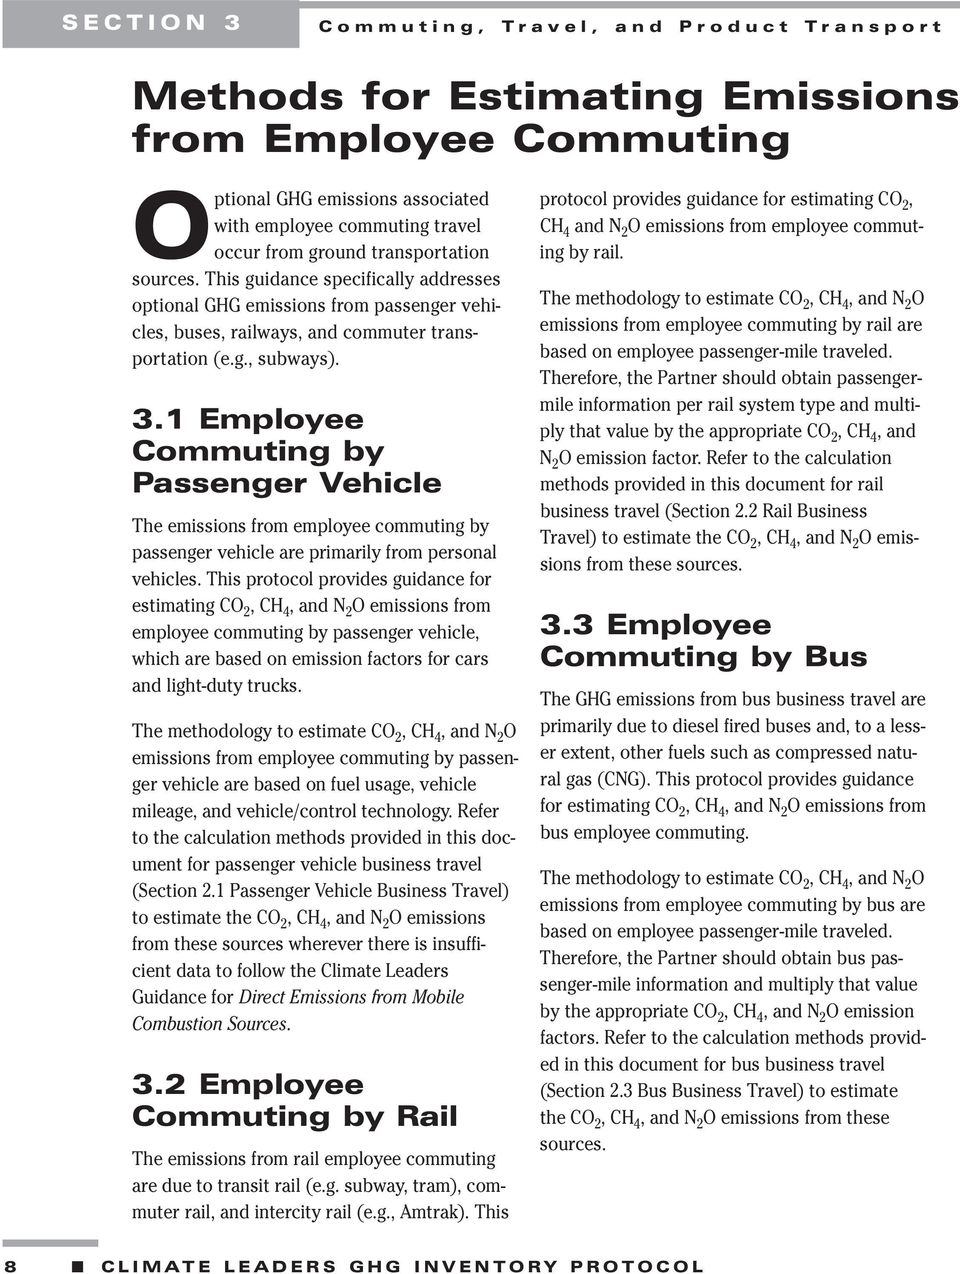 1 Employee Commuting by Passenger Vehicle The emissions from employee commuting by passenger vehicle are primarily from personal vehicles.